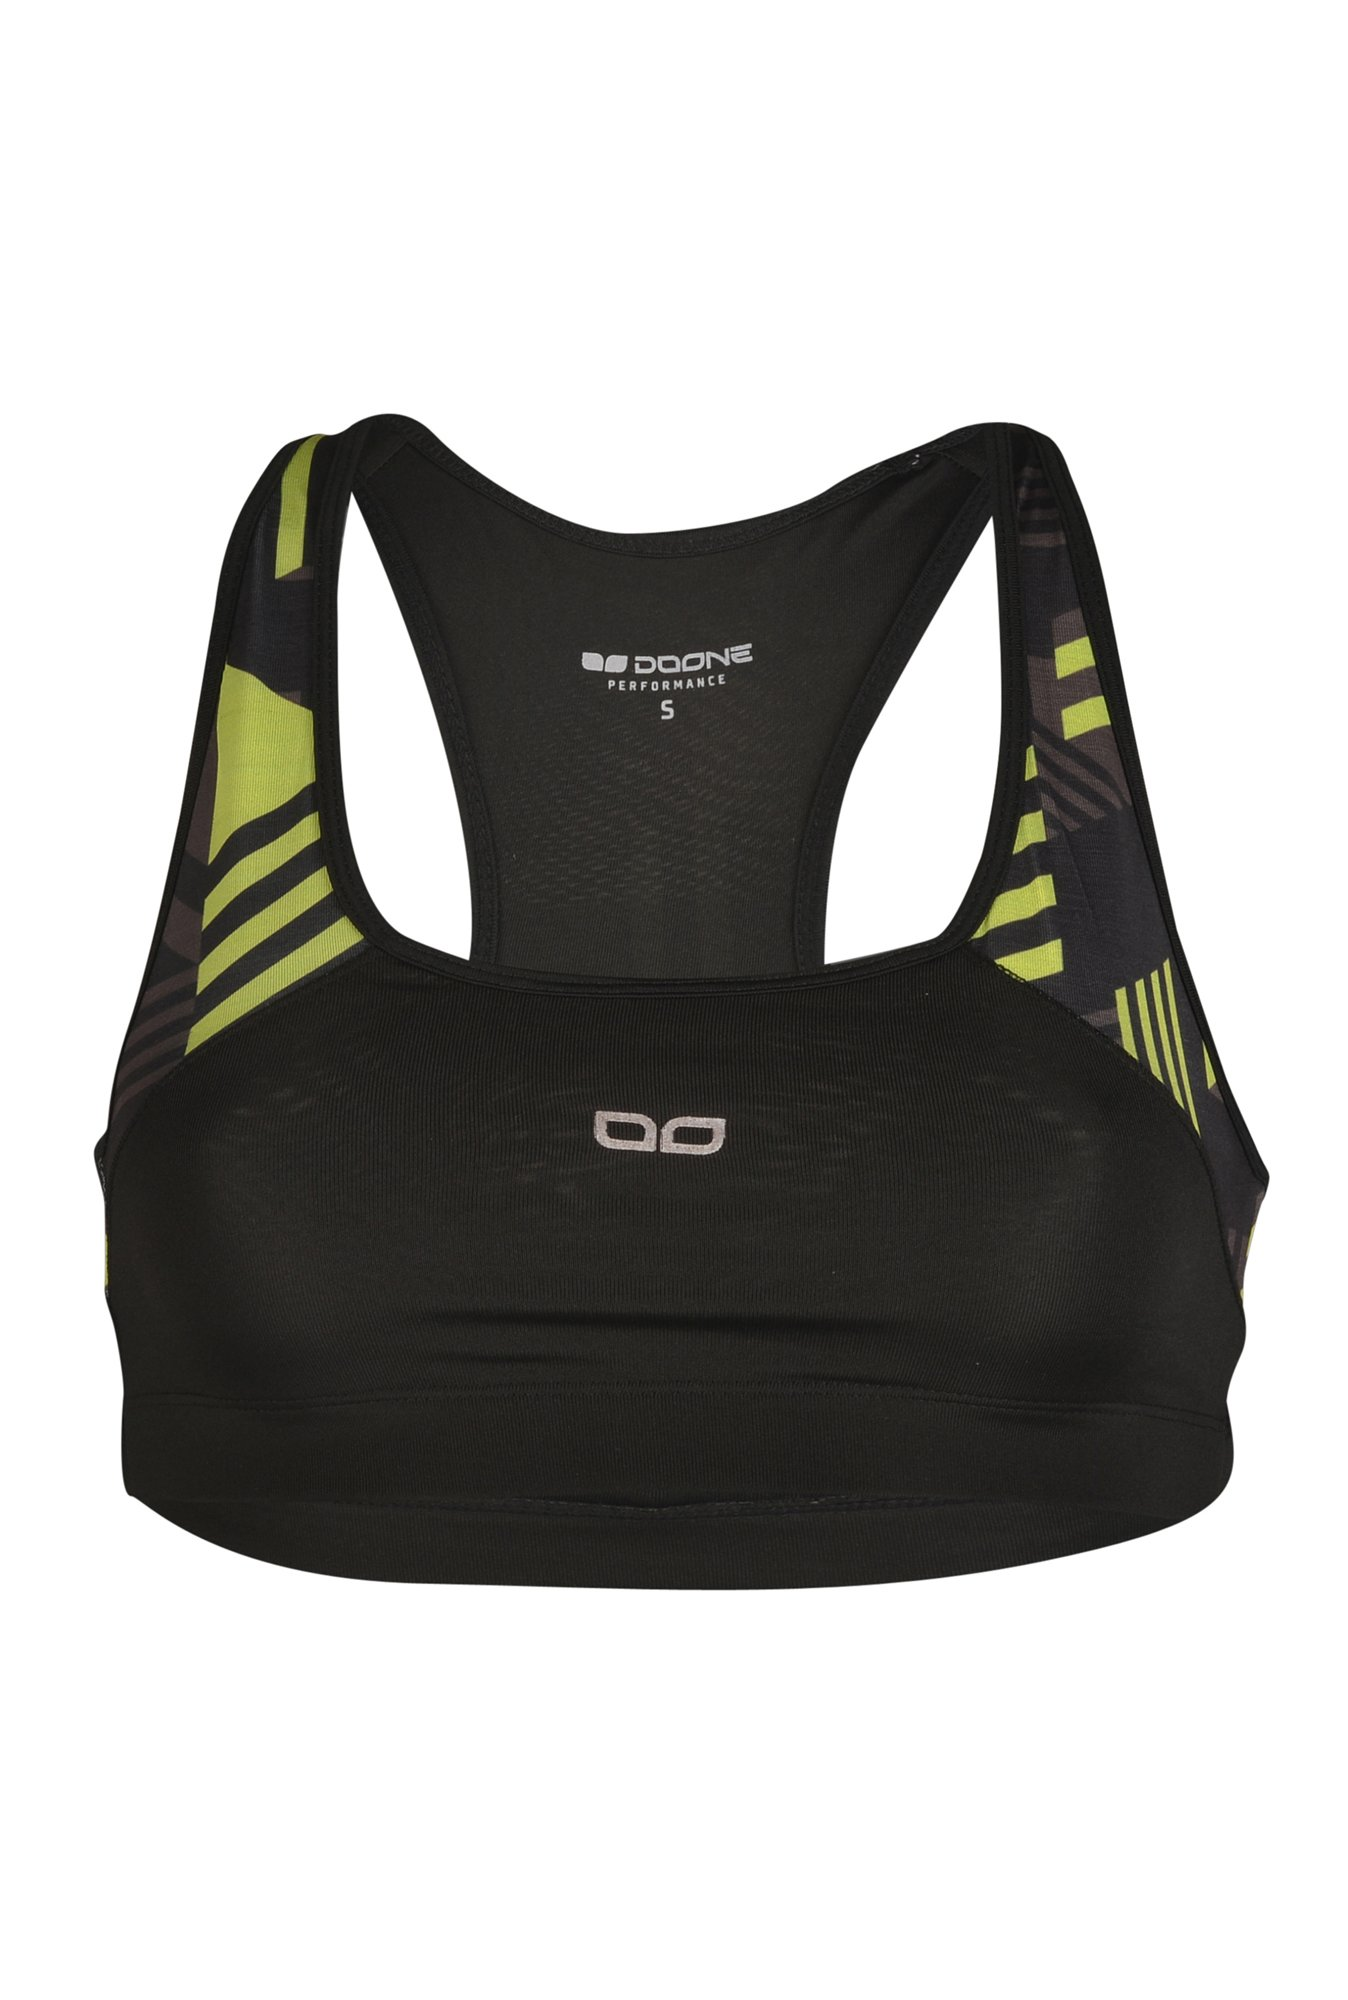 Doone By Sportzone Green Fitness Top